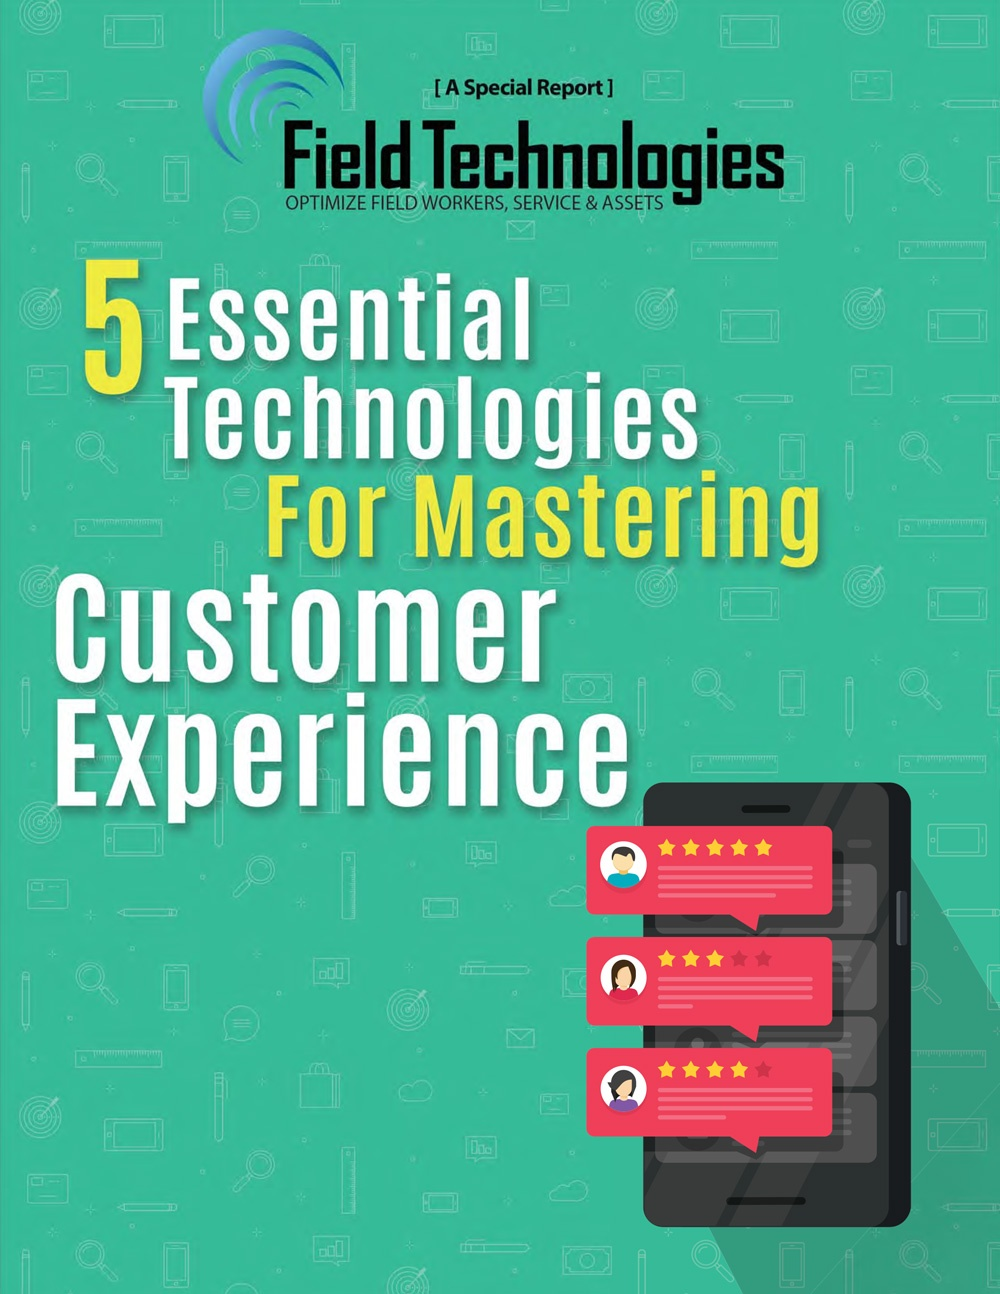 RL - 5 Technologies for Mastering Customer Experience